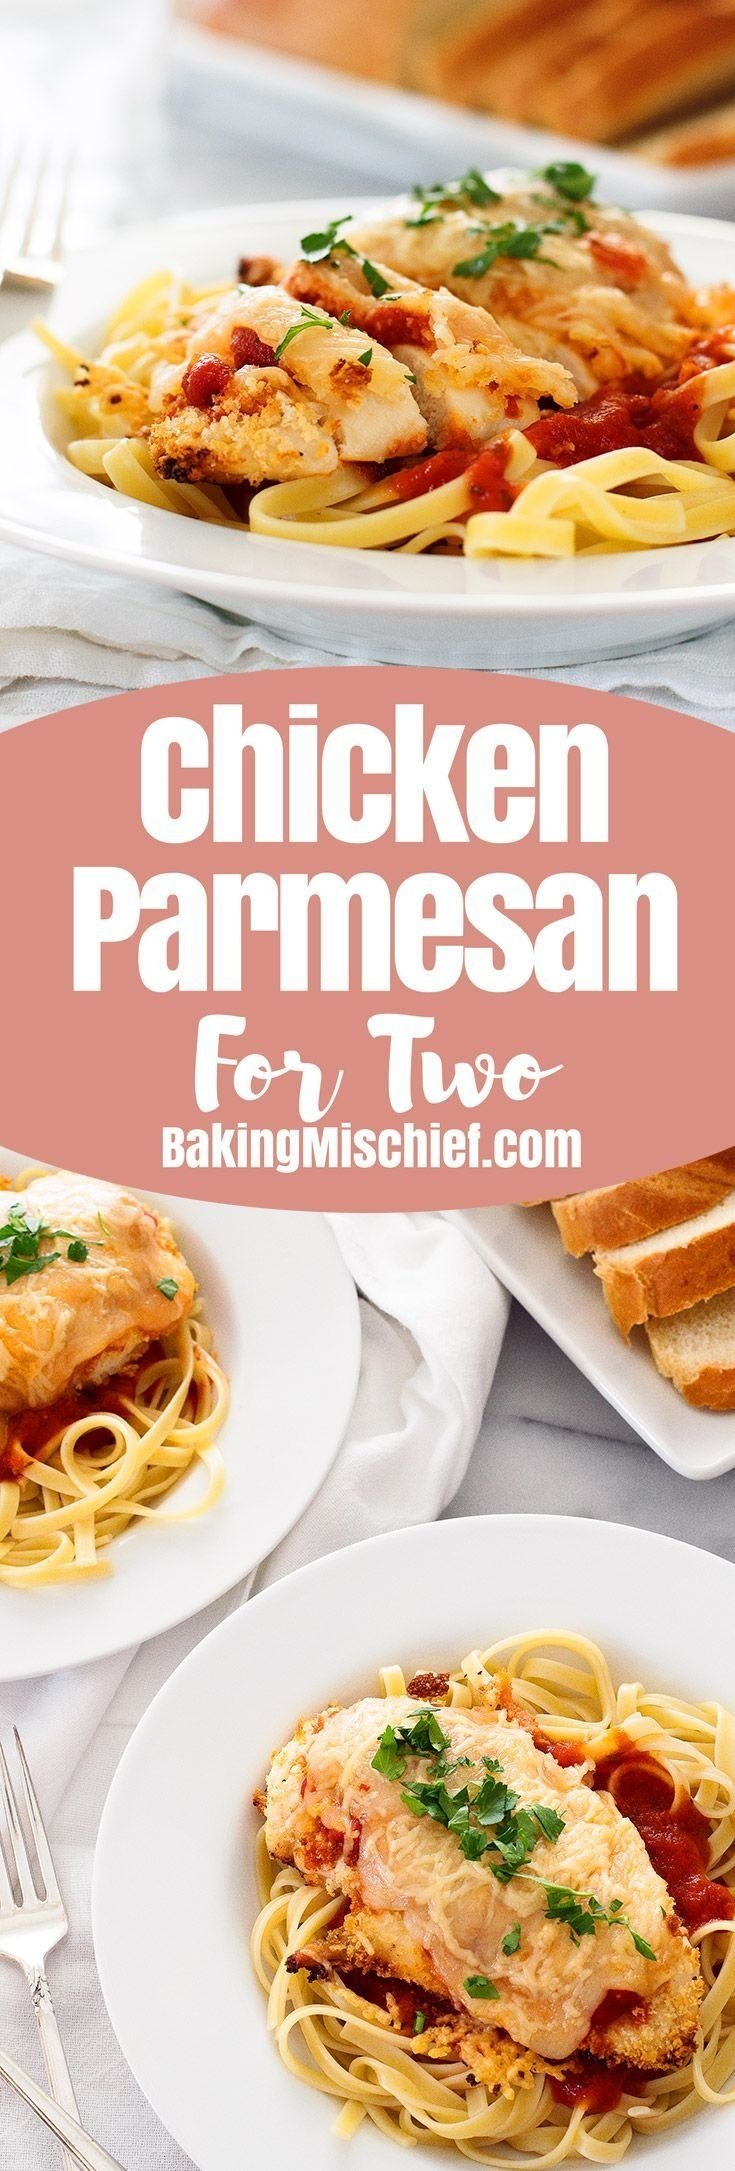 10 Fashionable Cheap Meal Ideas For Two download cheap easy recipes for two food photos 5 2020